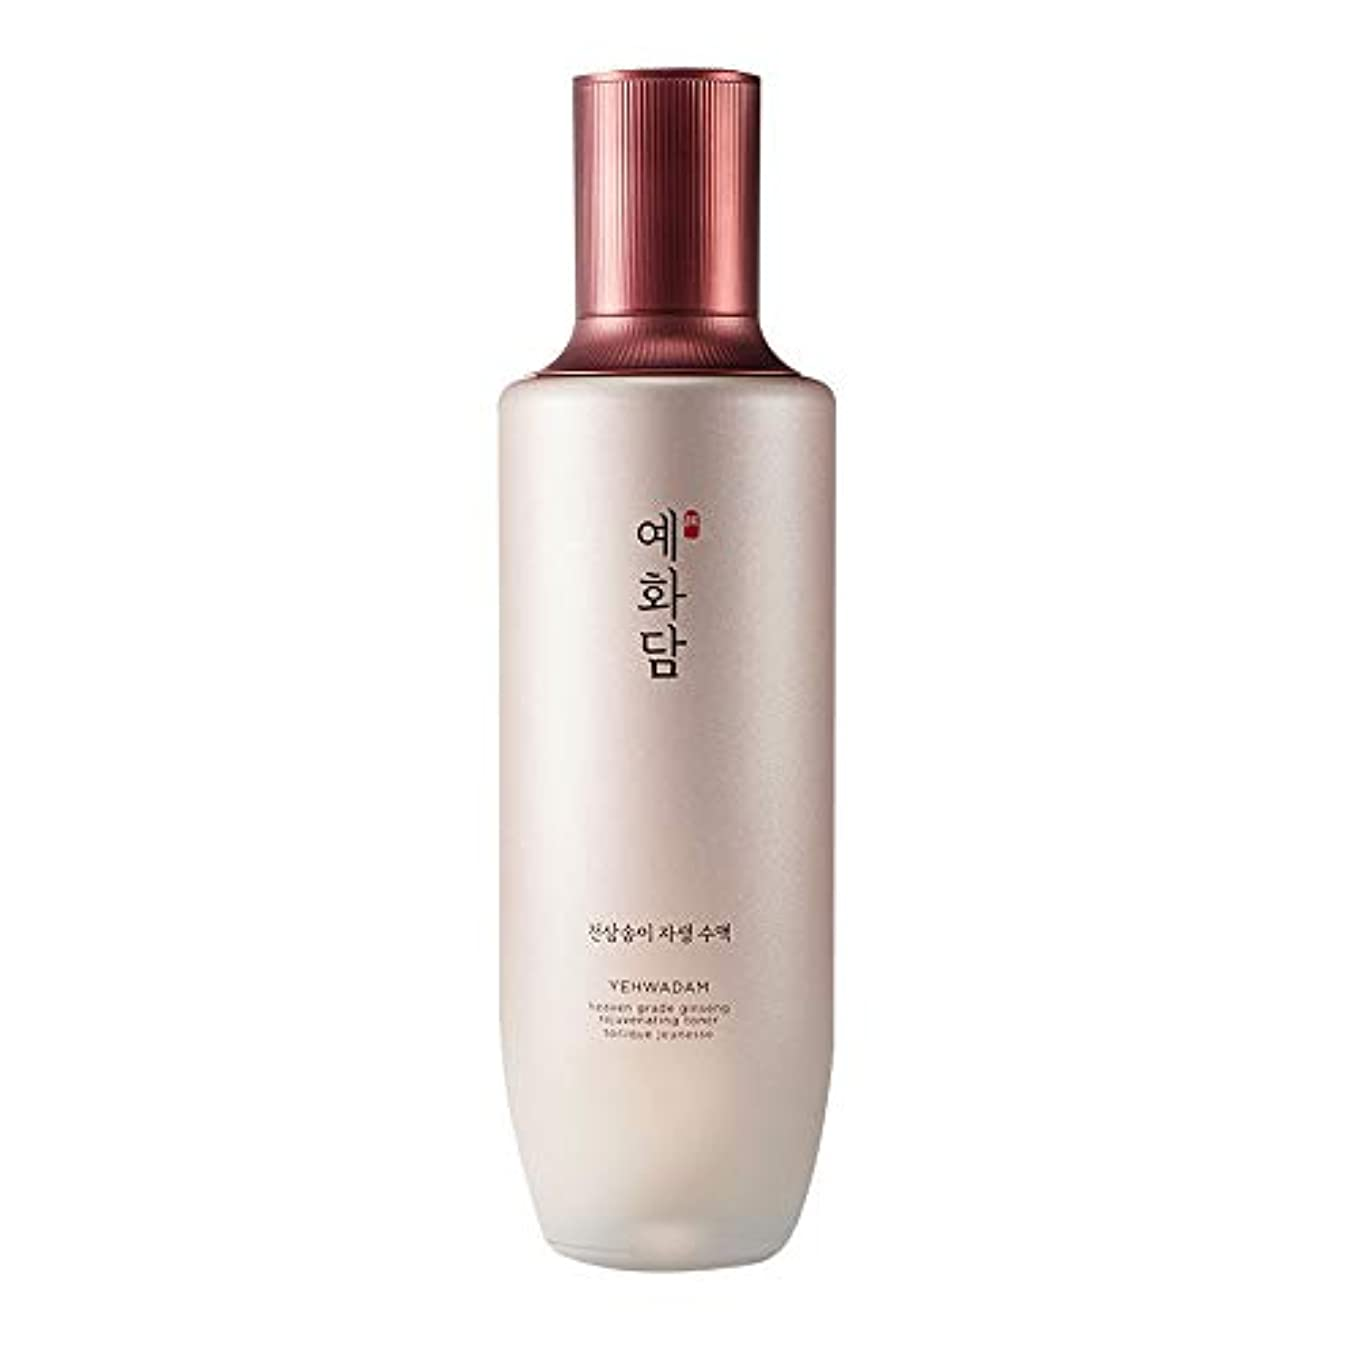 数学運搬数学[ザフェイスショップ]The Faceshop YEHWADAM天参松栮自生水液 155ml The Faceshop YEHWADAM Heaven Grade Ginseng Regenerating Toner 155ml...